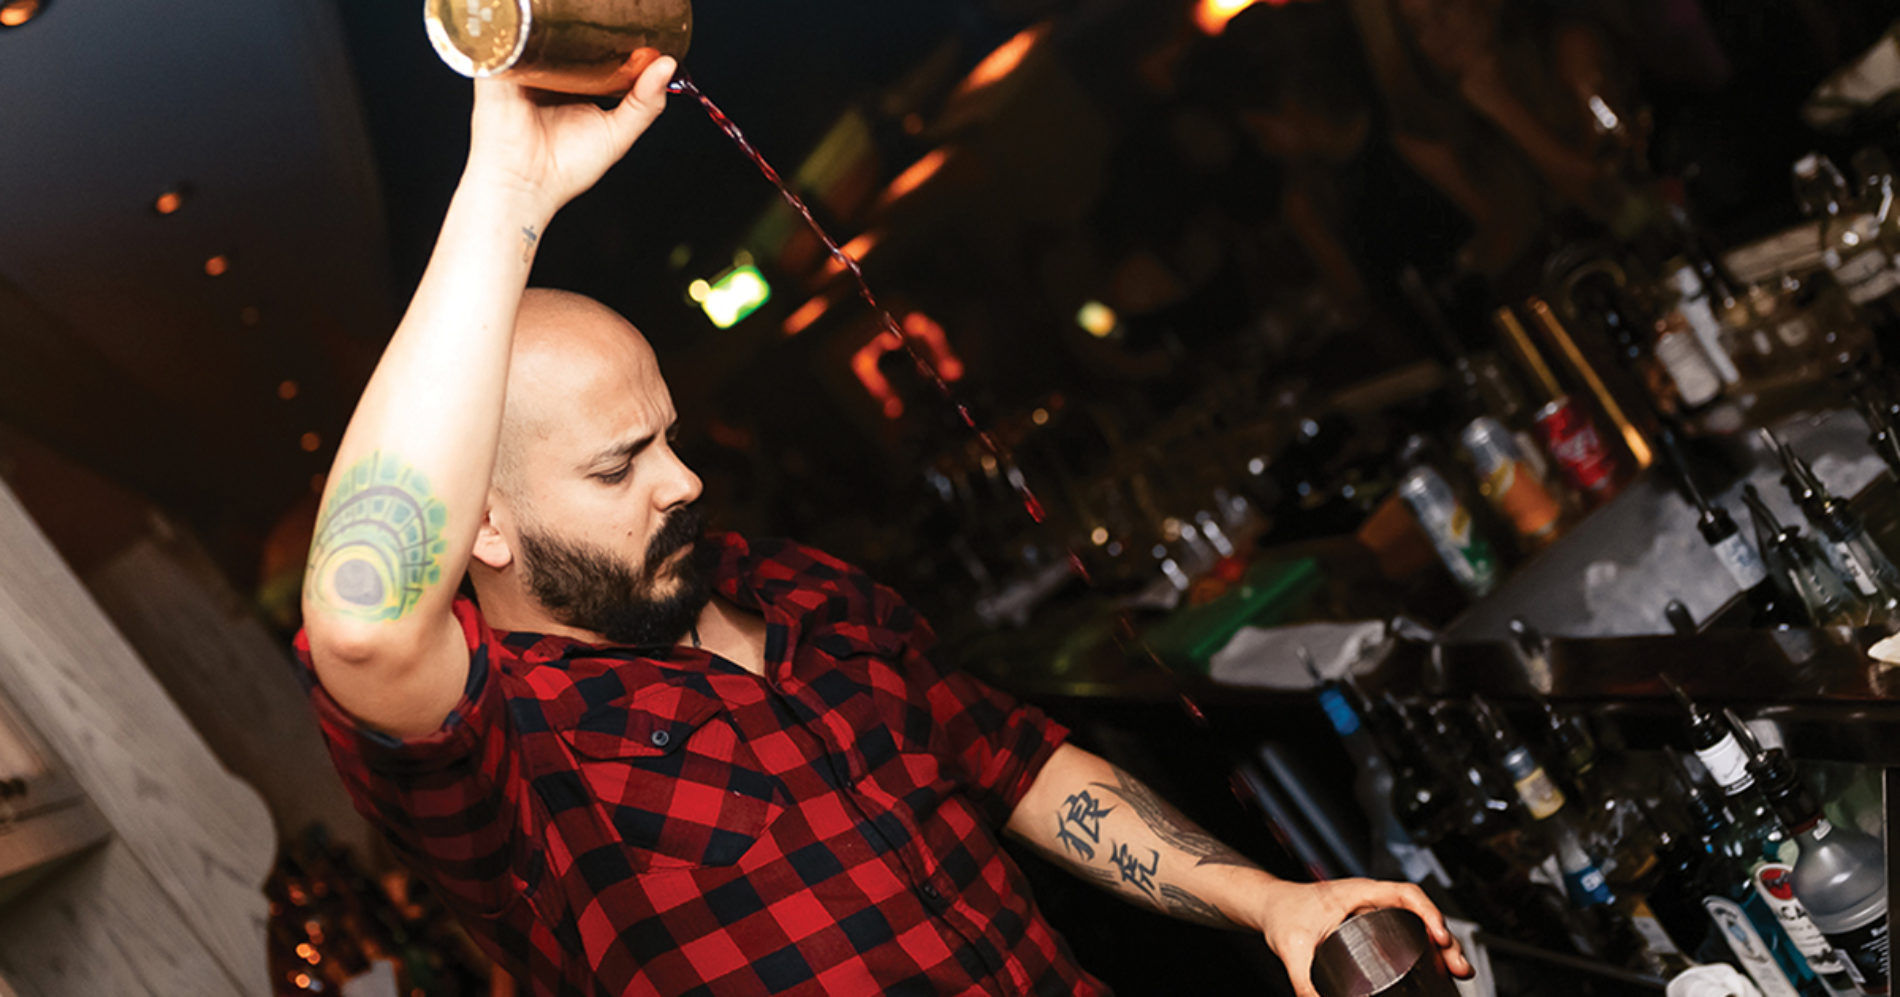 Meet the mixologist: Weslodge Saloon Dubai's Emilio Valencia